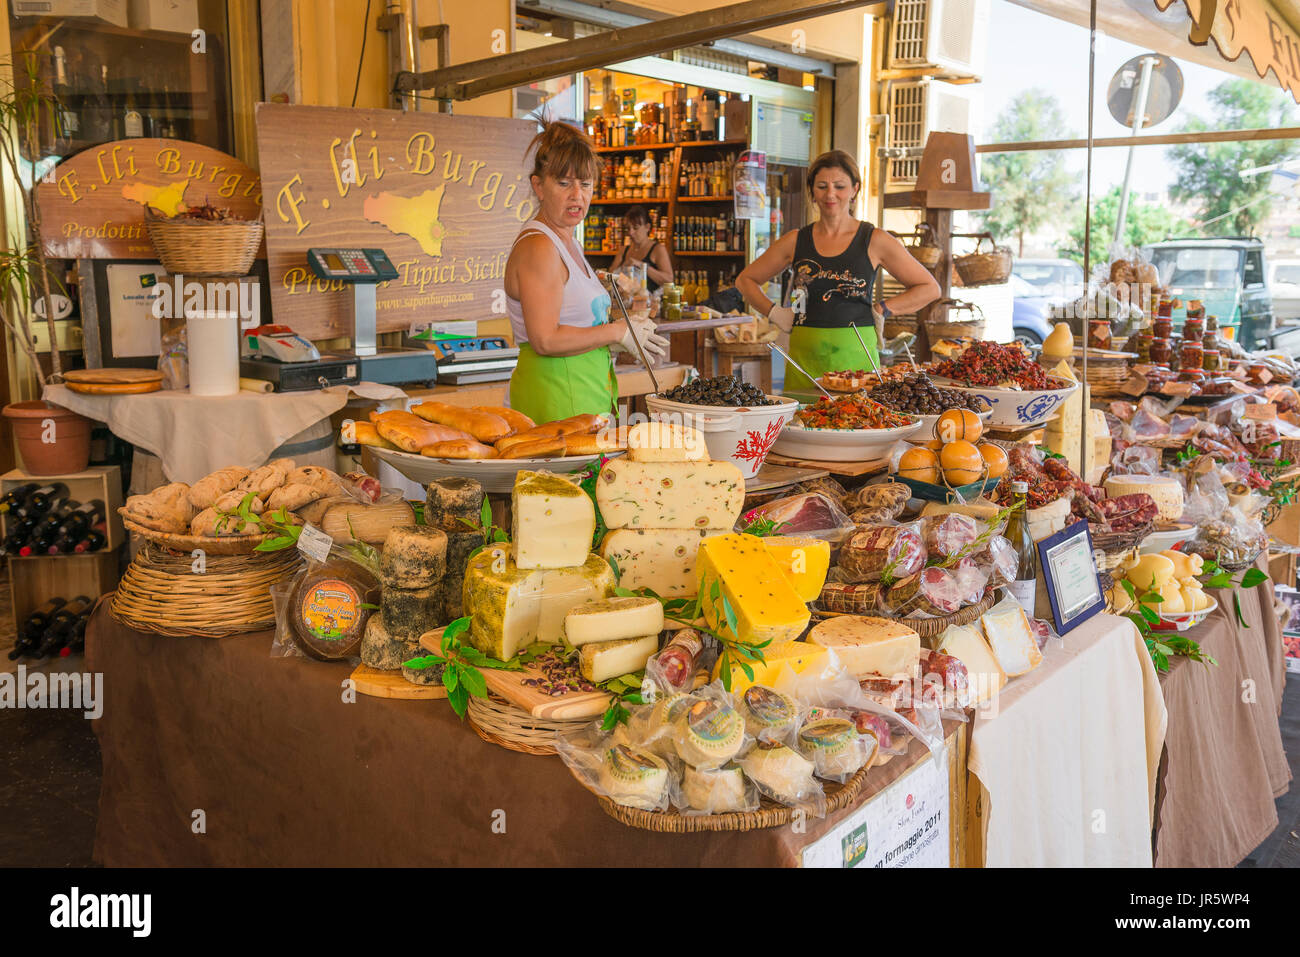 Sicily food market, a popular delicatessen selling typically Sicilian produce in the market on Ortigia (Ortygia) island, Syracuse, Sicily, - Stock Image